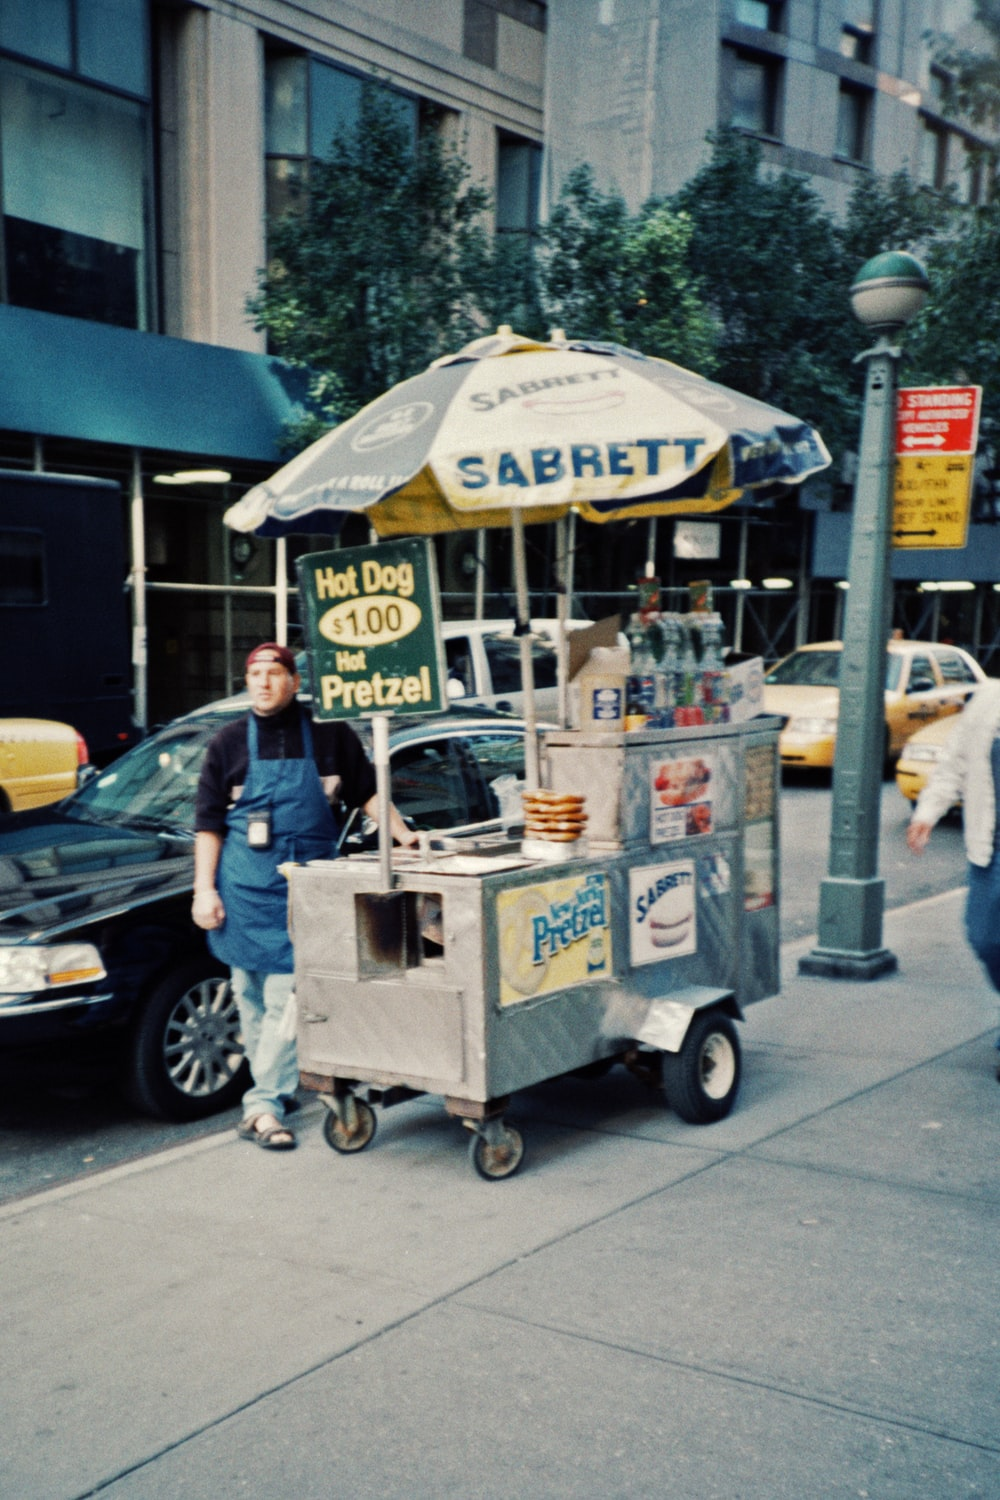 man in blue t-shirt and blue denim jeans standing beside food cart